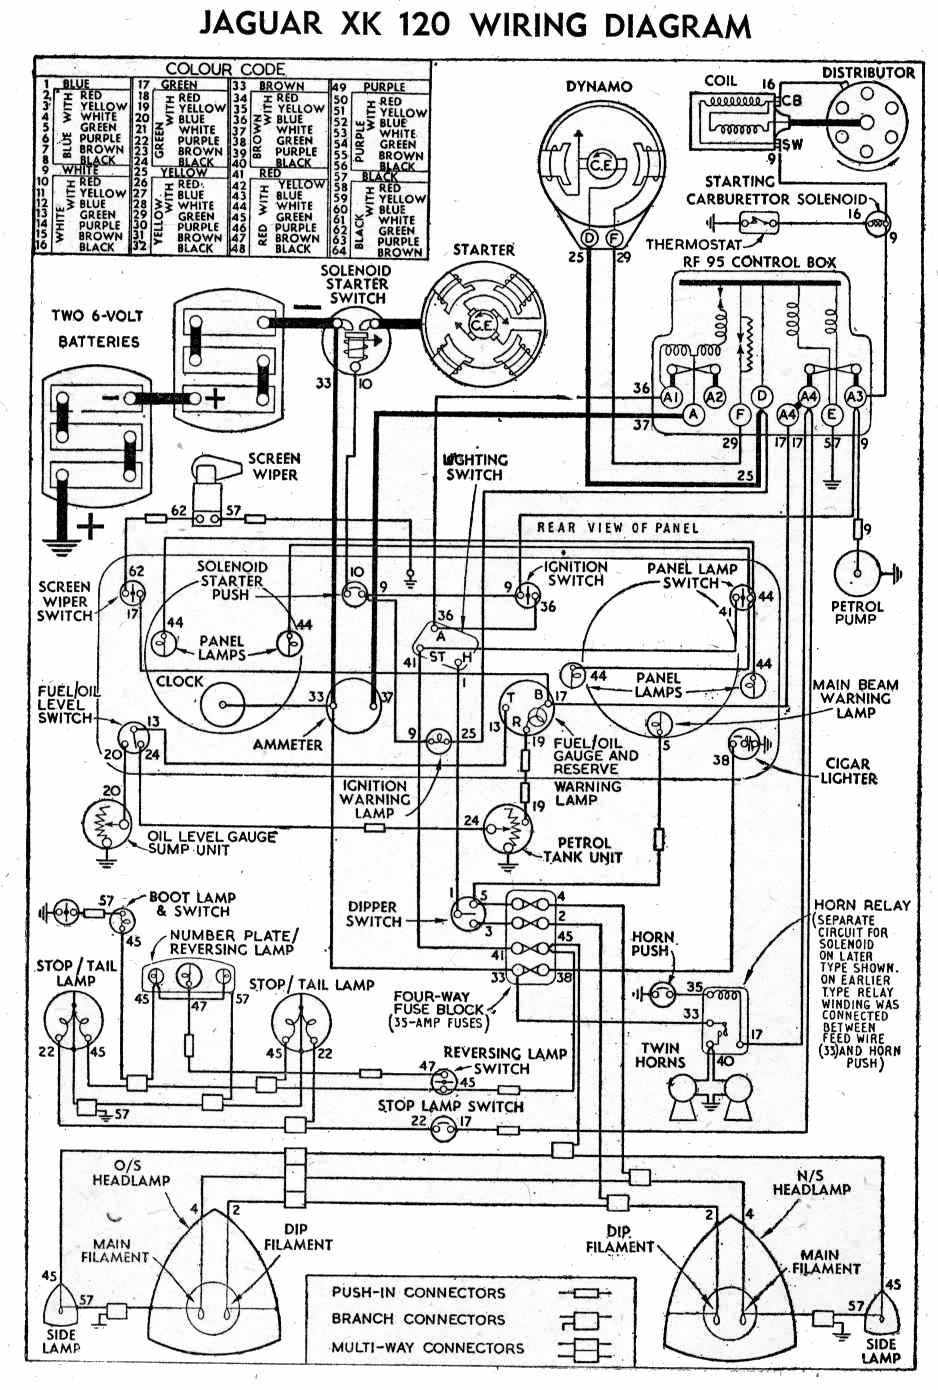 Wiring Diagrams Jaguar Xk120 Diagram Libraries Fender P J B 1954 Todays1954